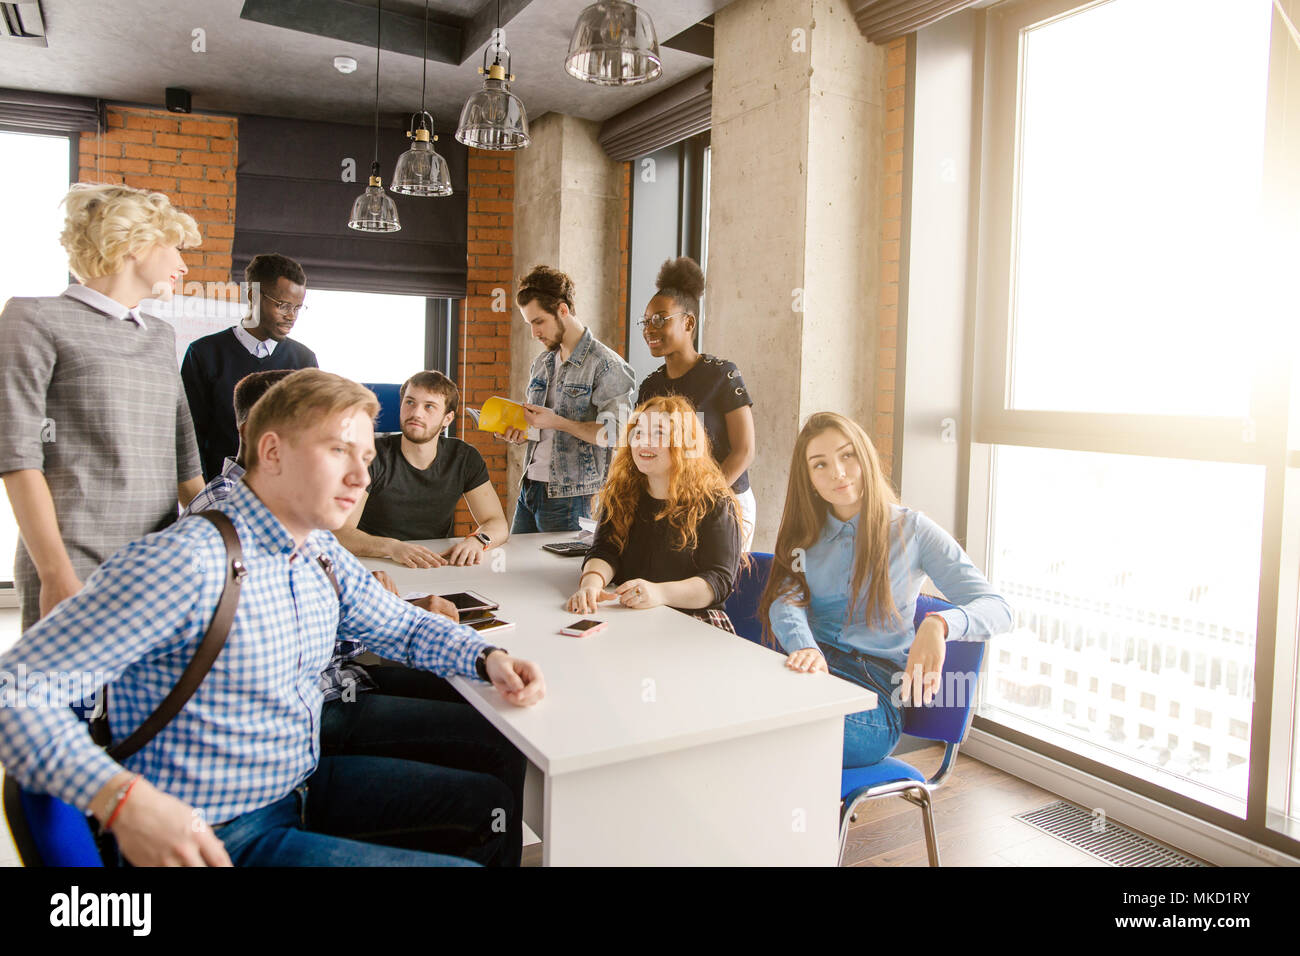 multicultural students activist forming group in consultation in the loft office building Stock Photo